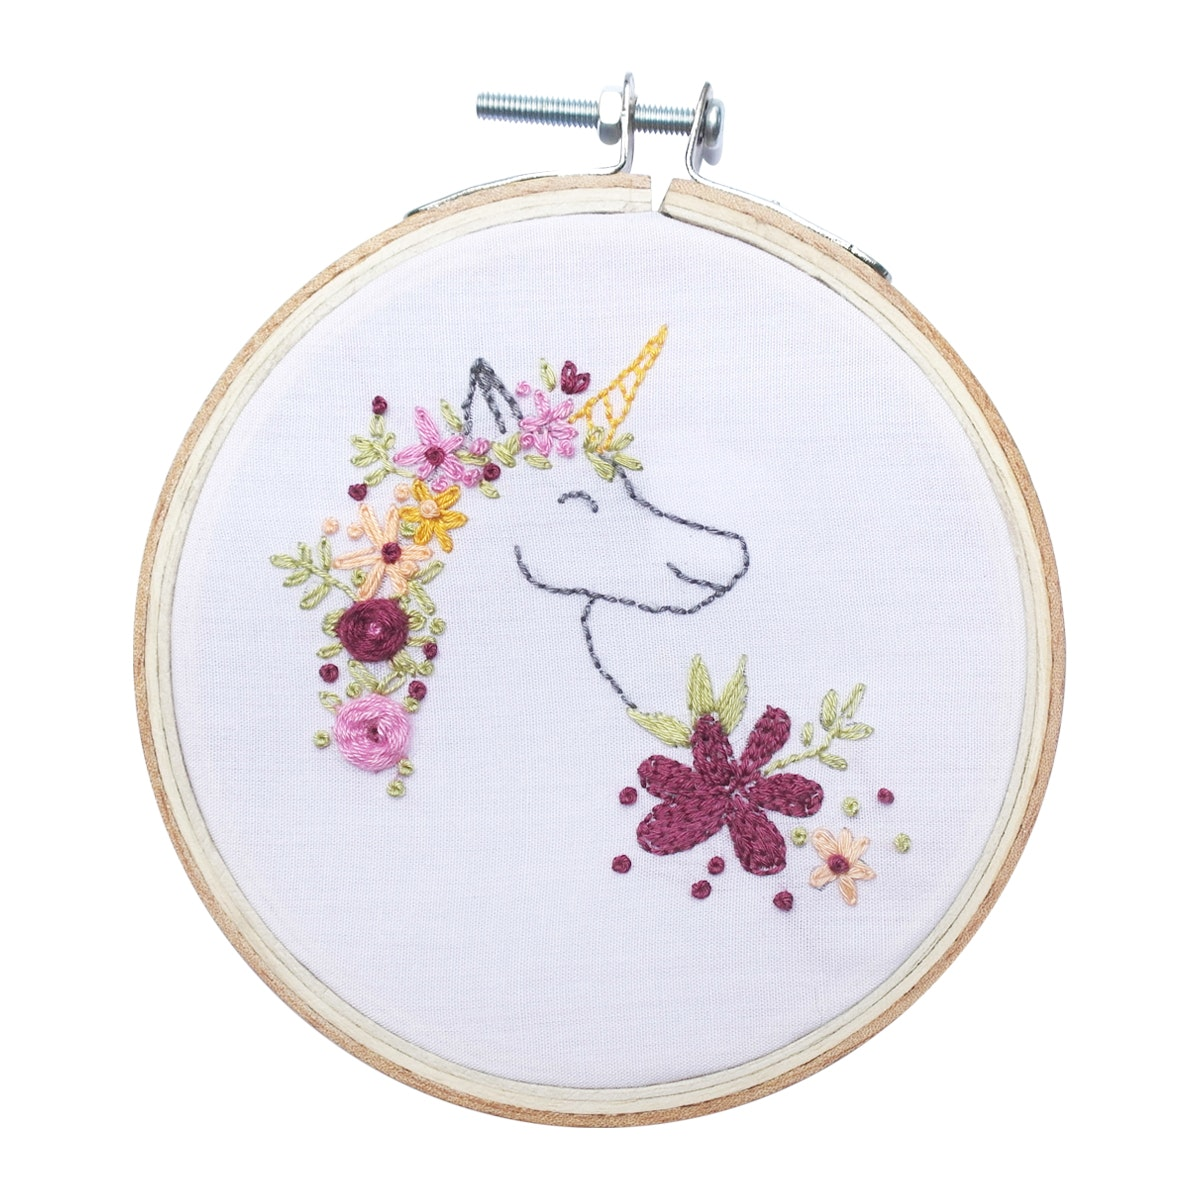 Gulaliku Hoop Art Embroidery Unicorn